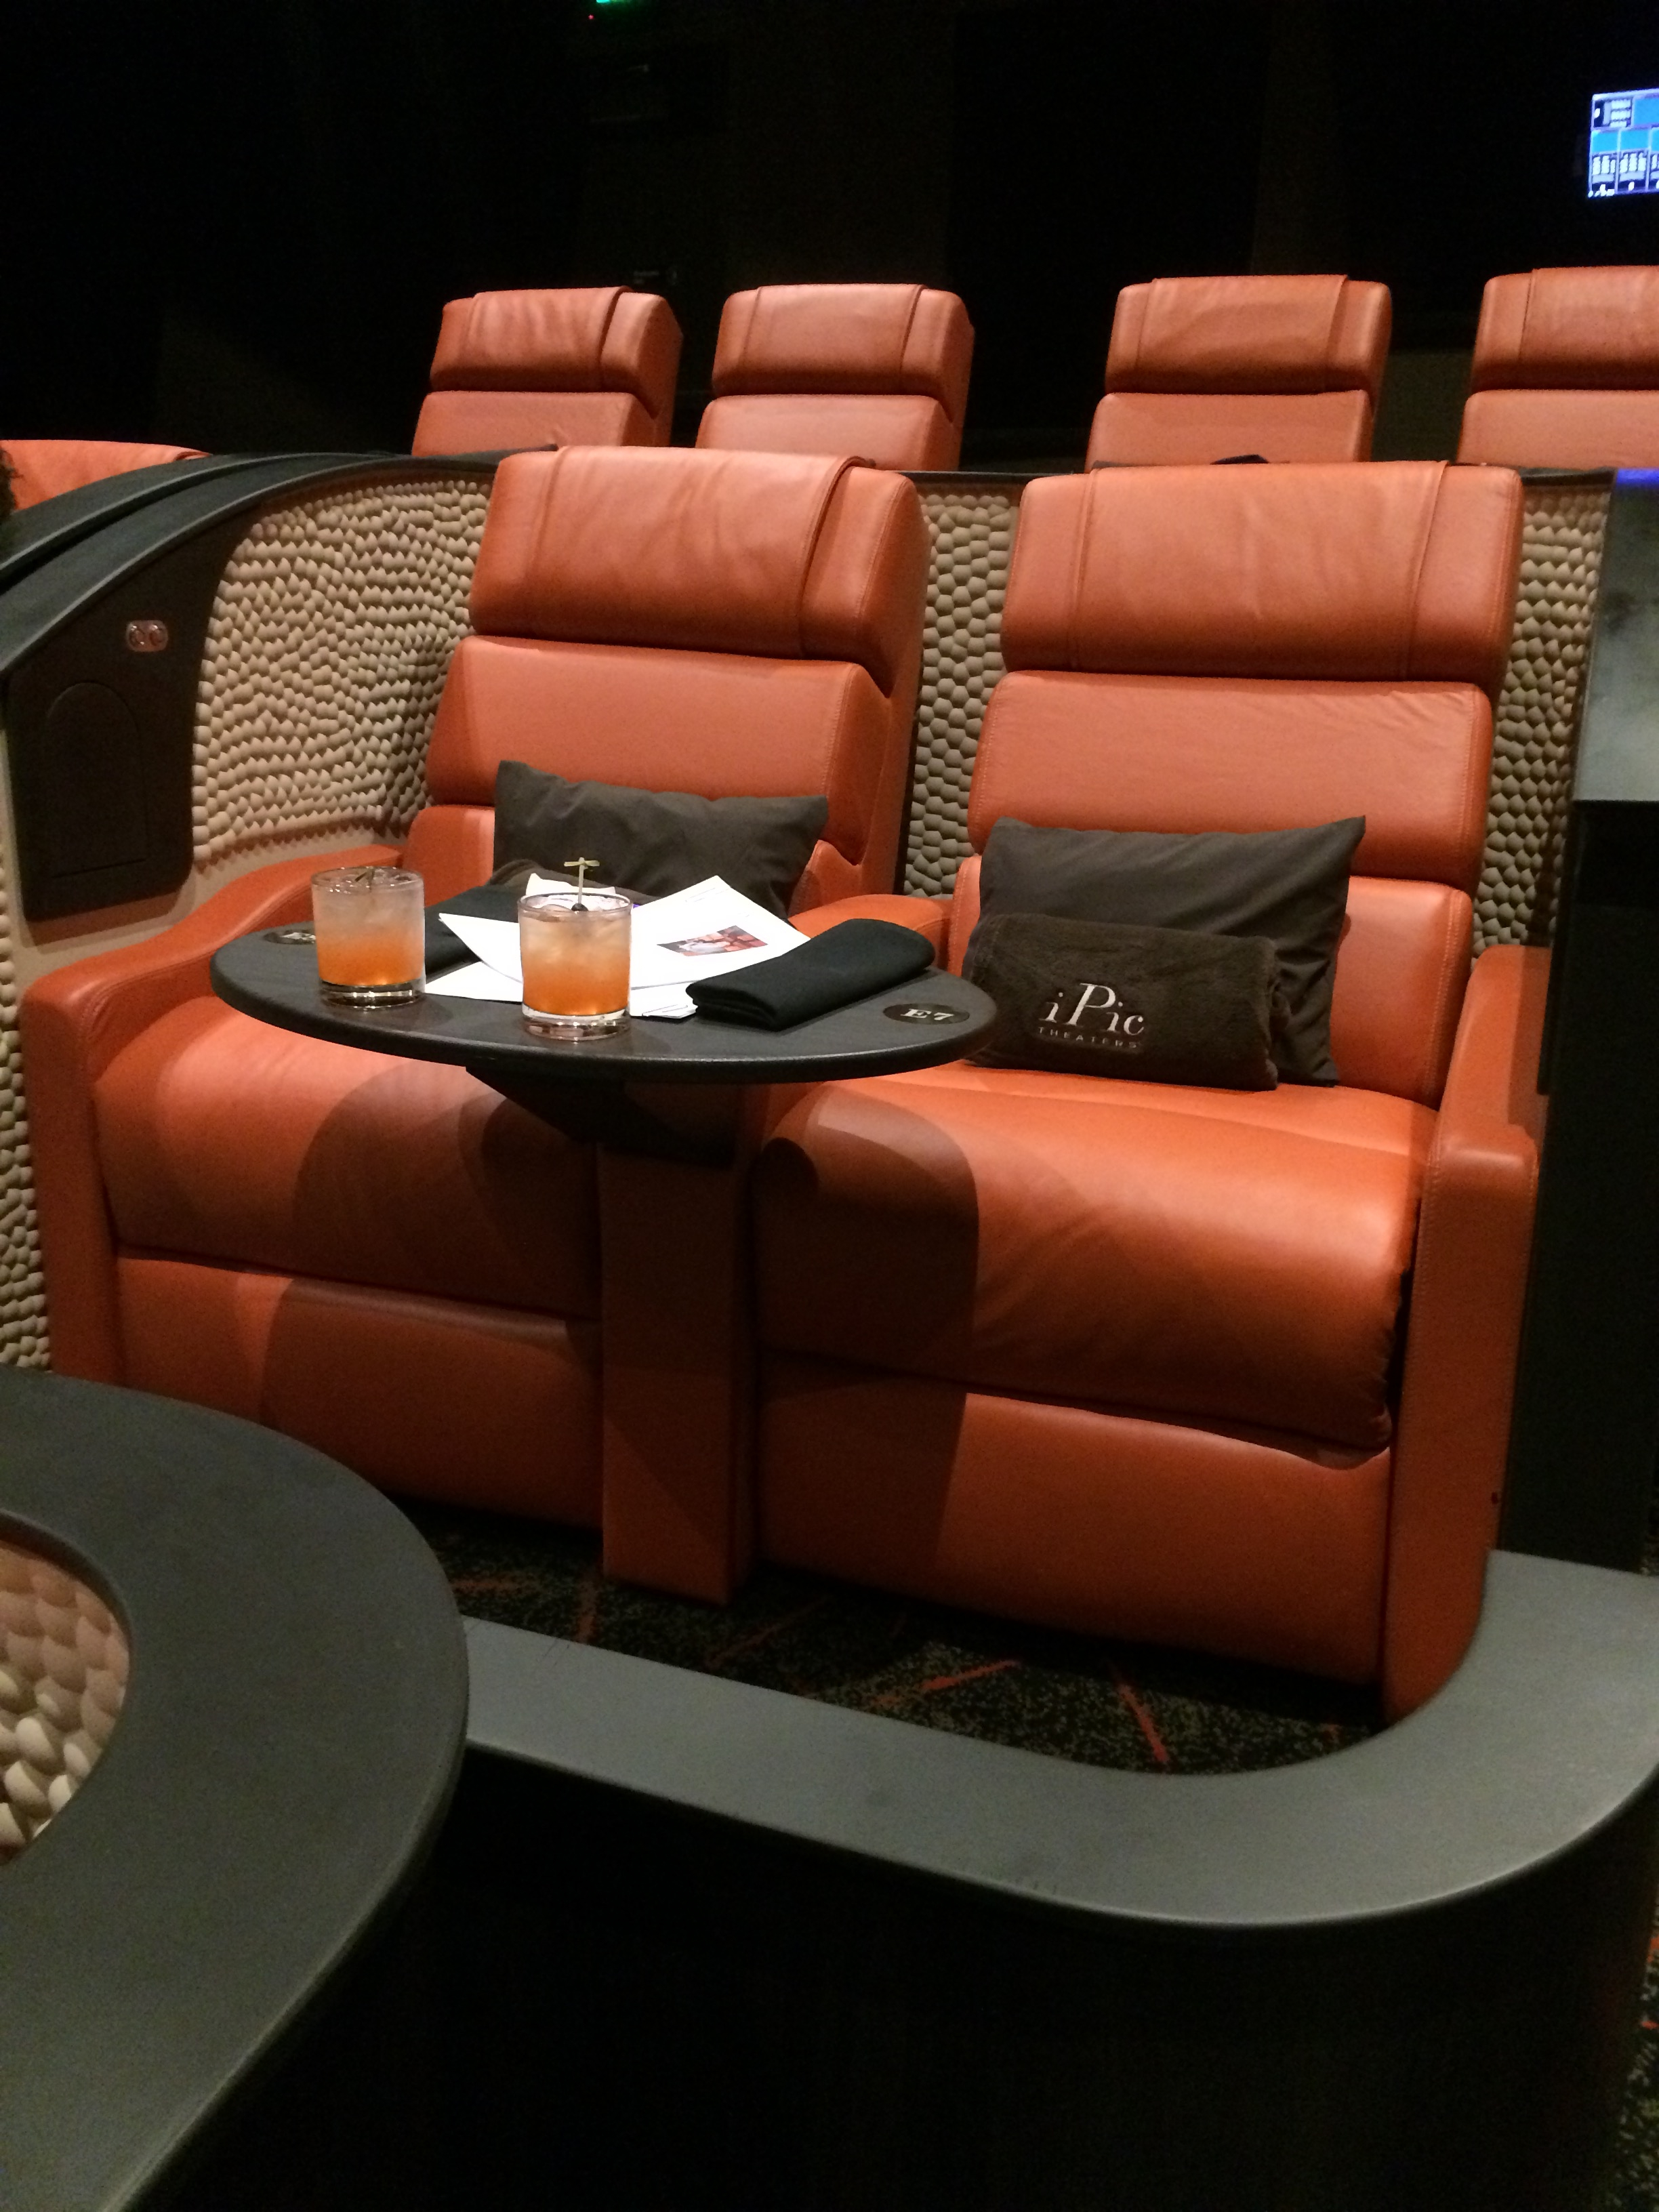 iPic Theater Review Black Girls Who Brunch